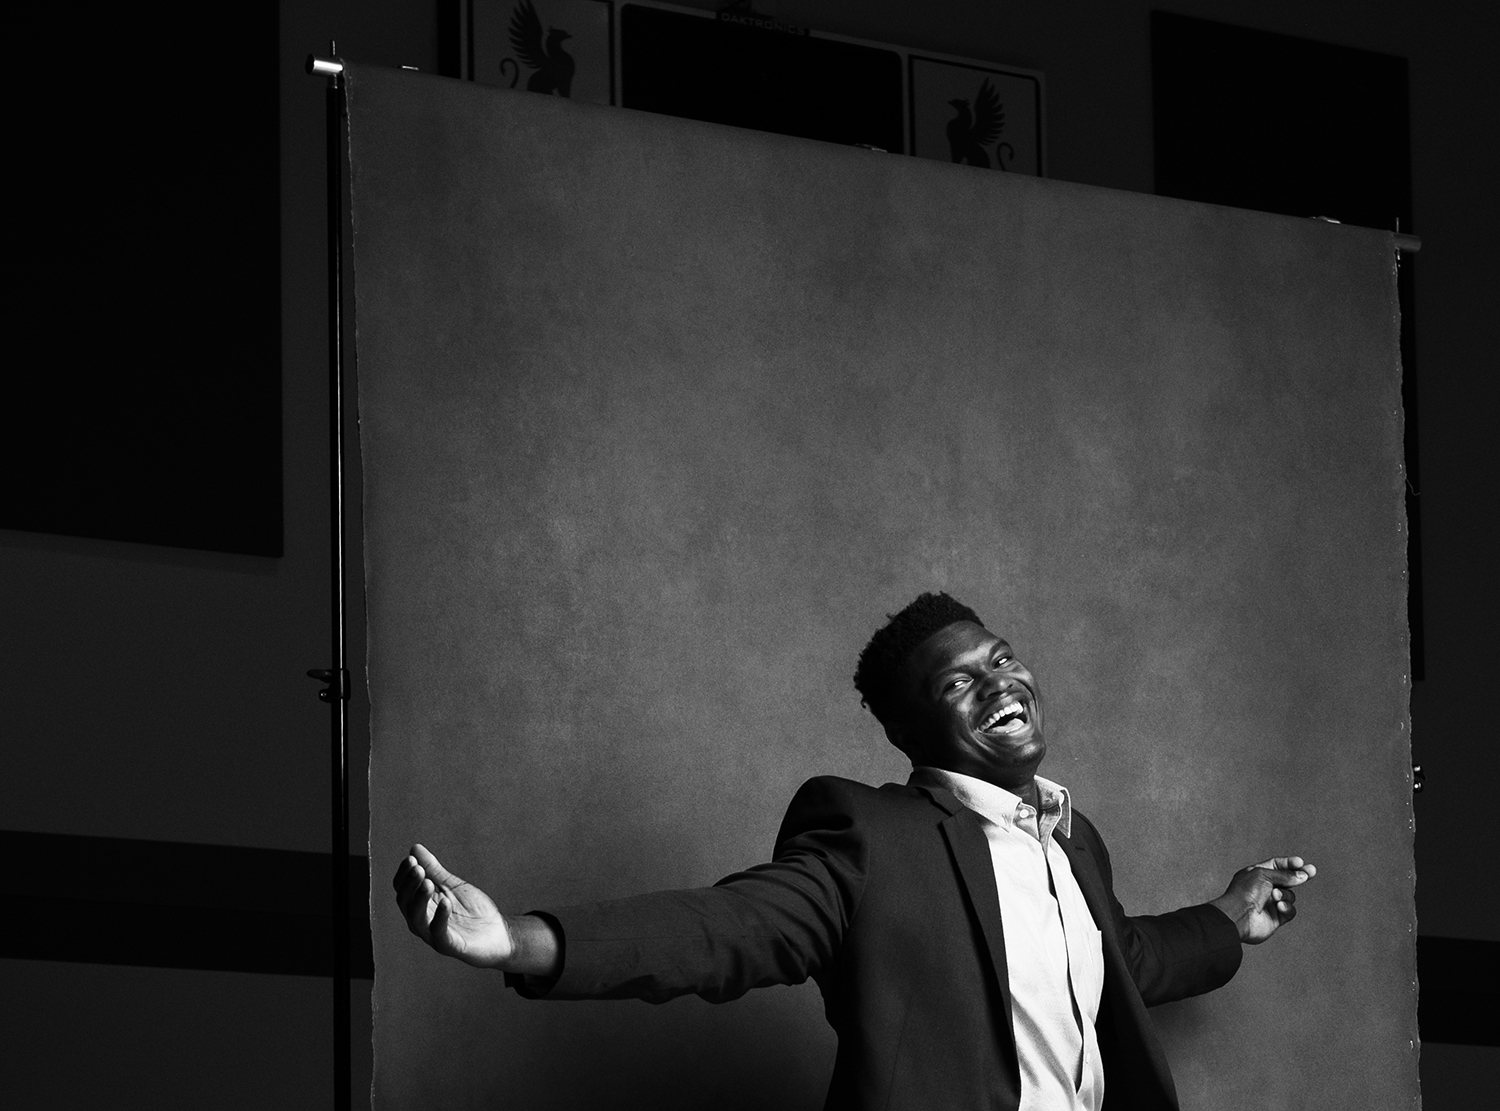 Ian Curcio photographs a jovial NBA star Zion Williamson in a suit